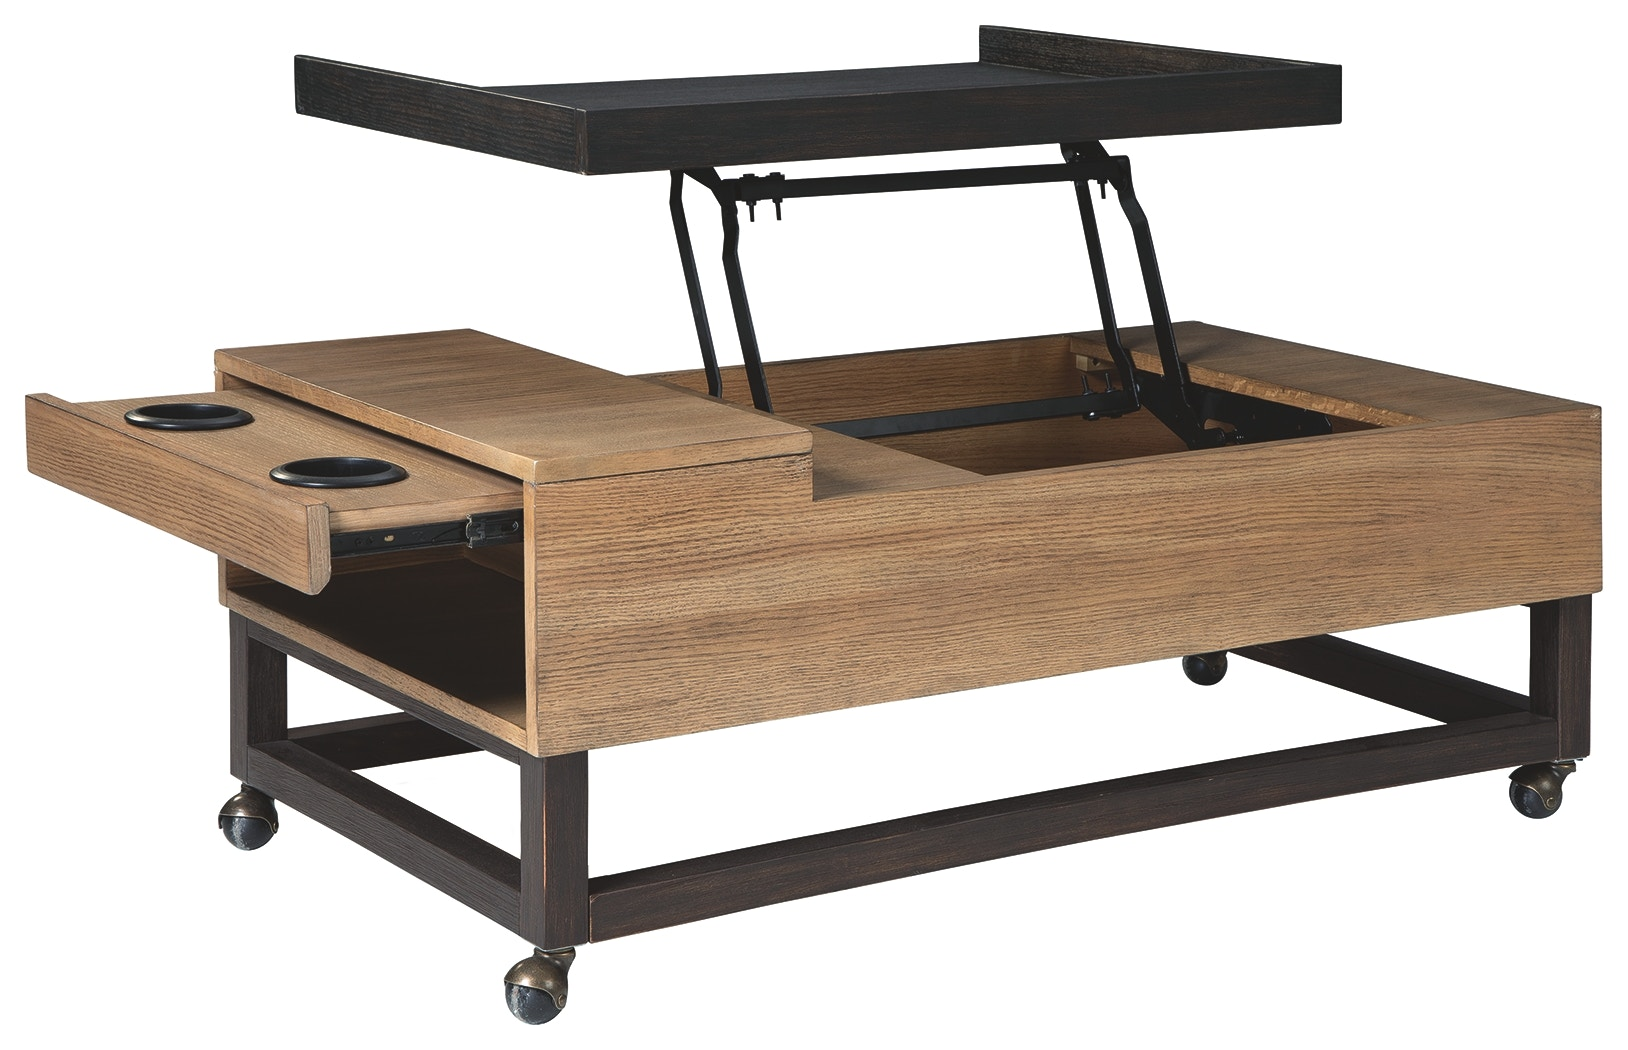 Signature Design By Ashley Living Room Fridley Lift-Top Coffee Table T920-9  - Art Sample Furniture